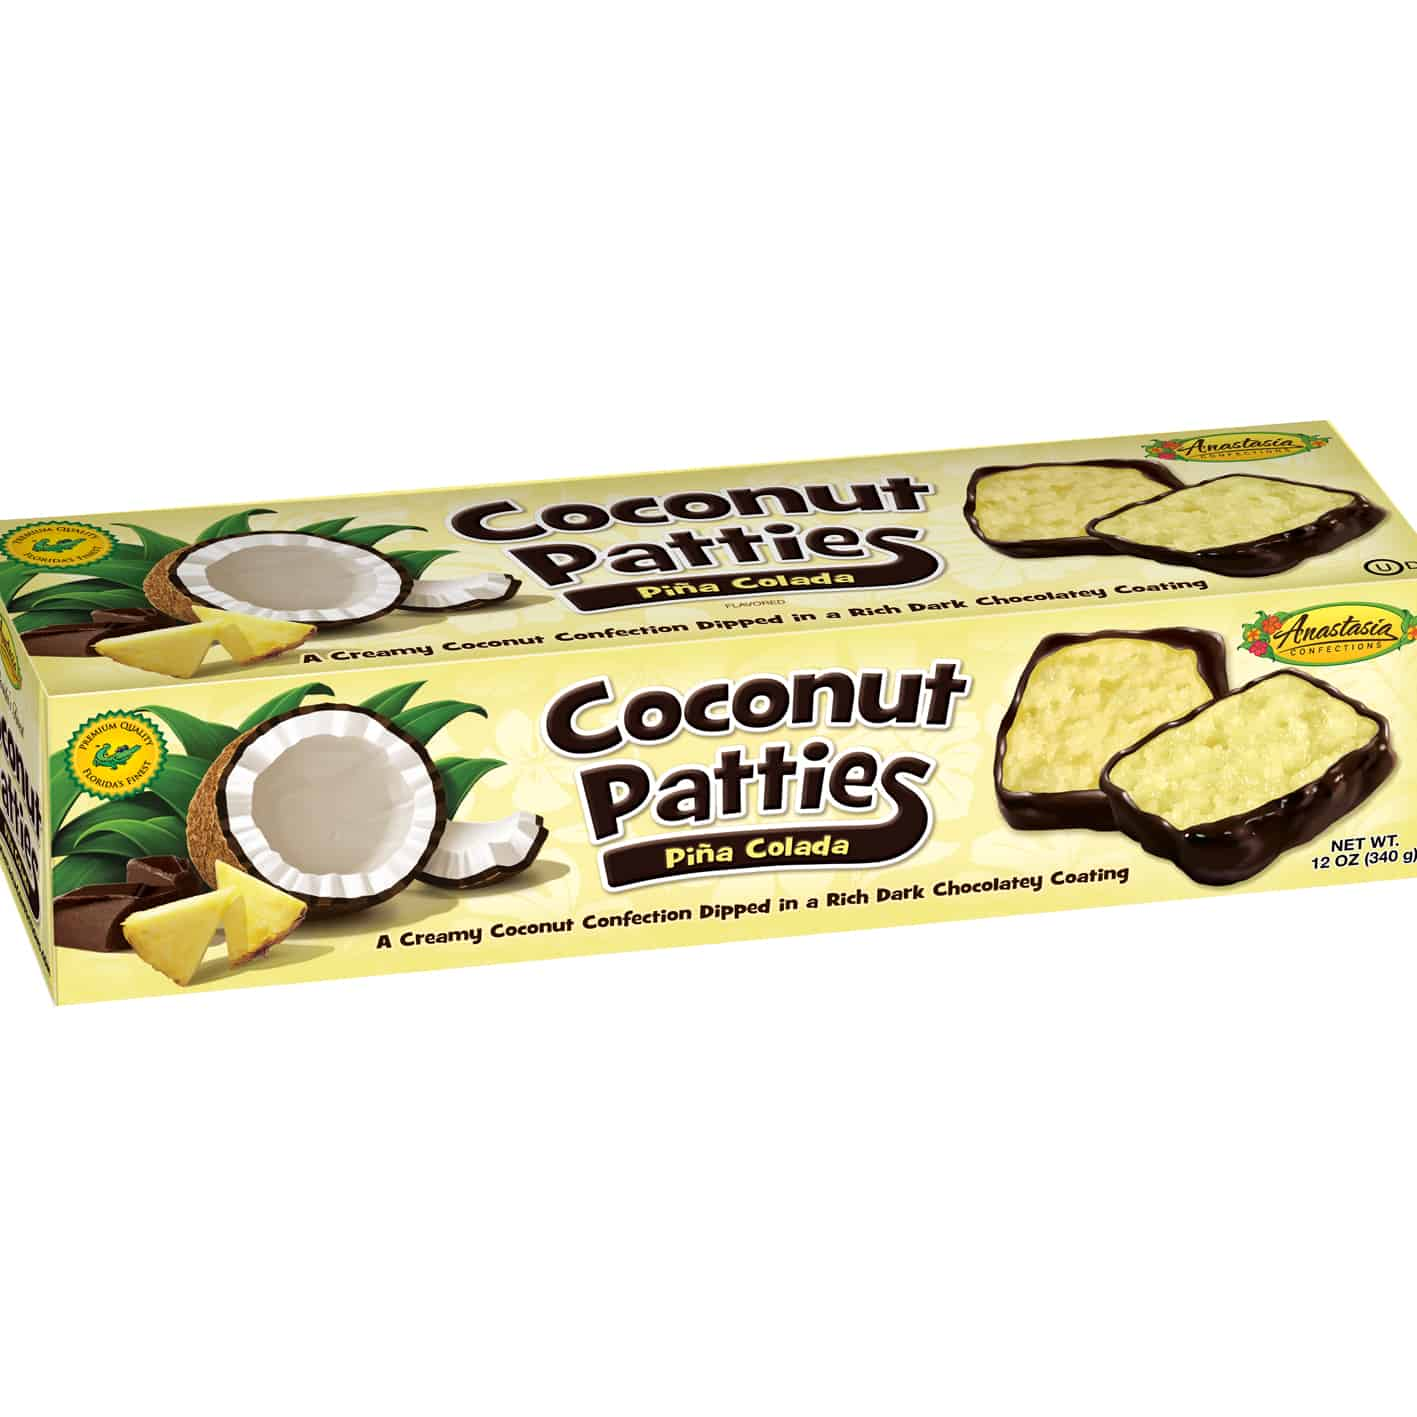 Anastasia Coconut Patties Pina Colada